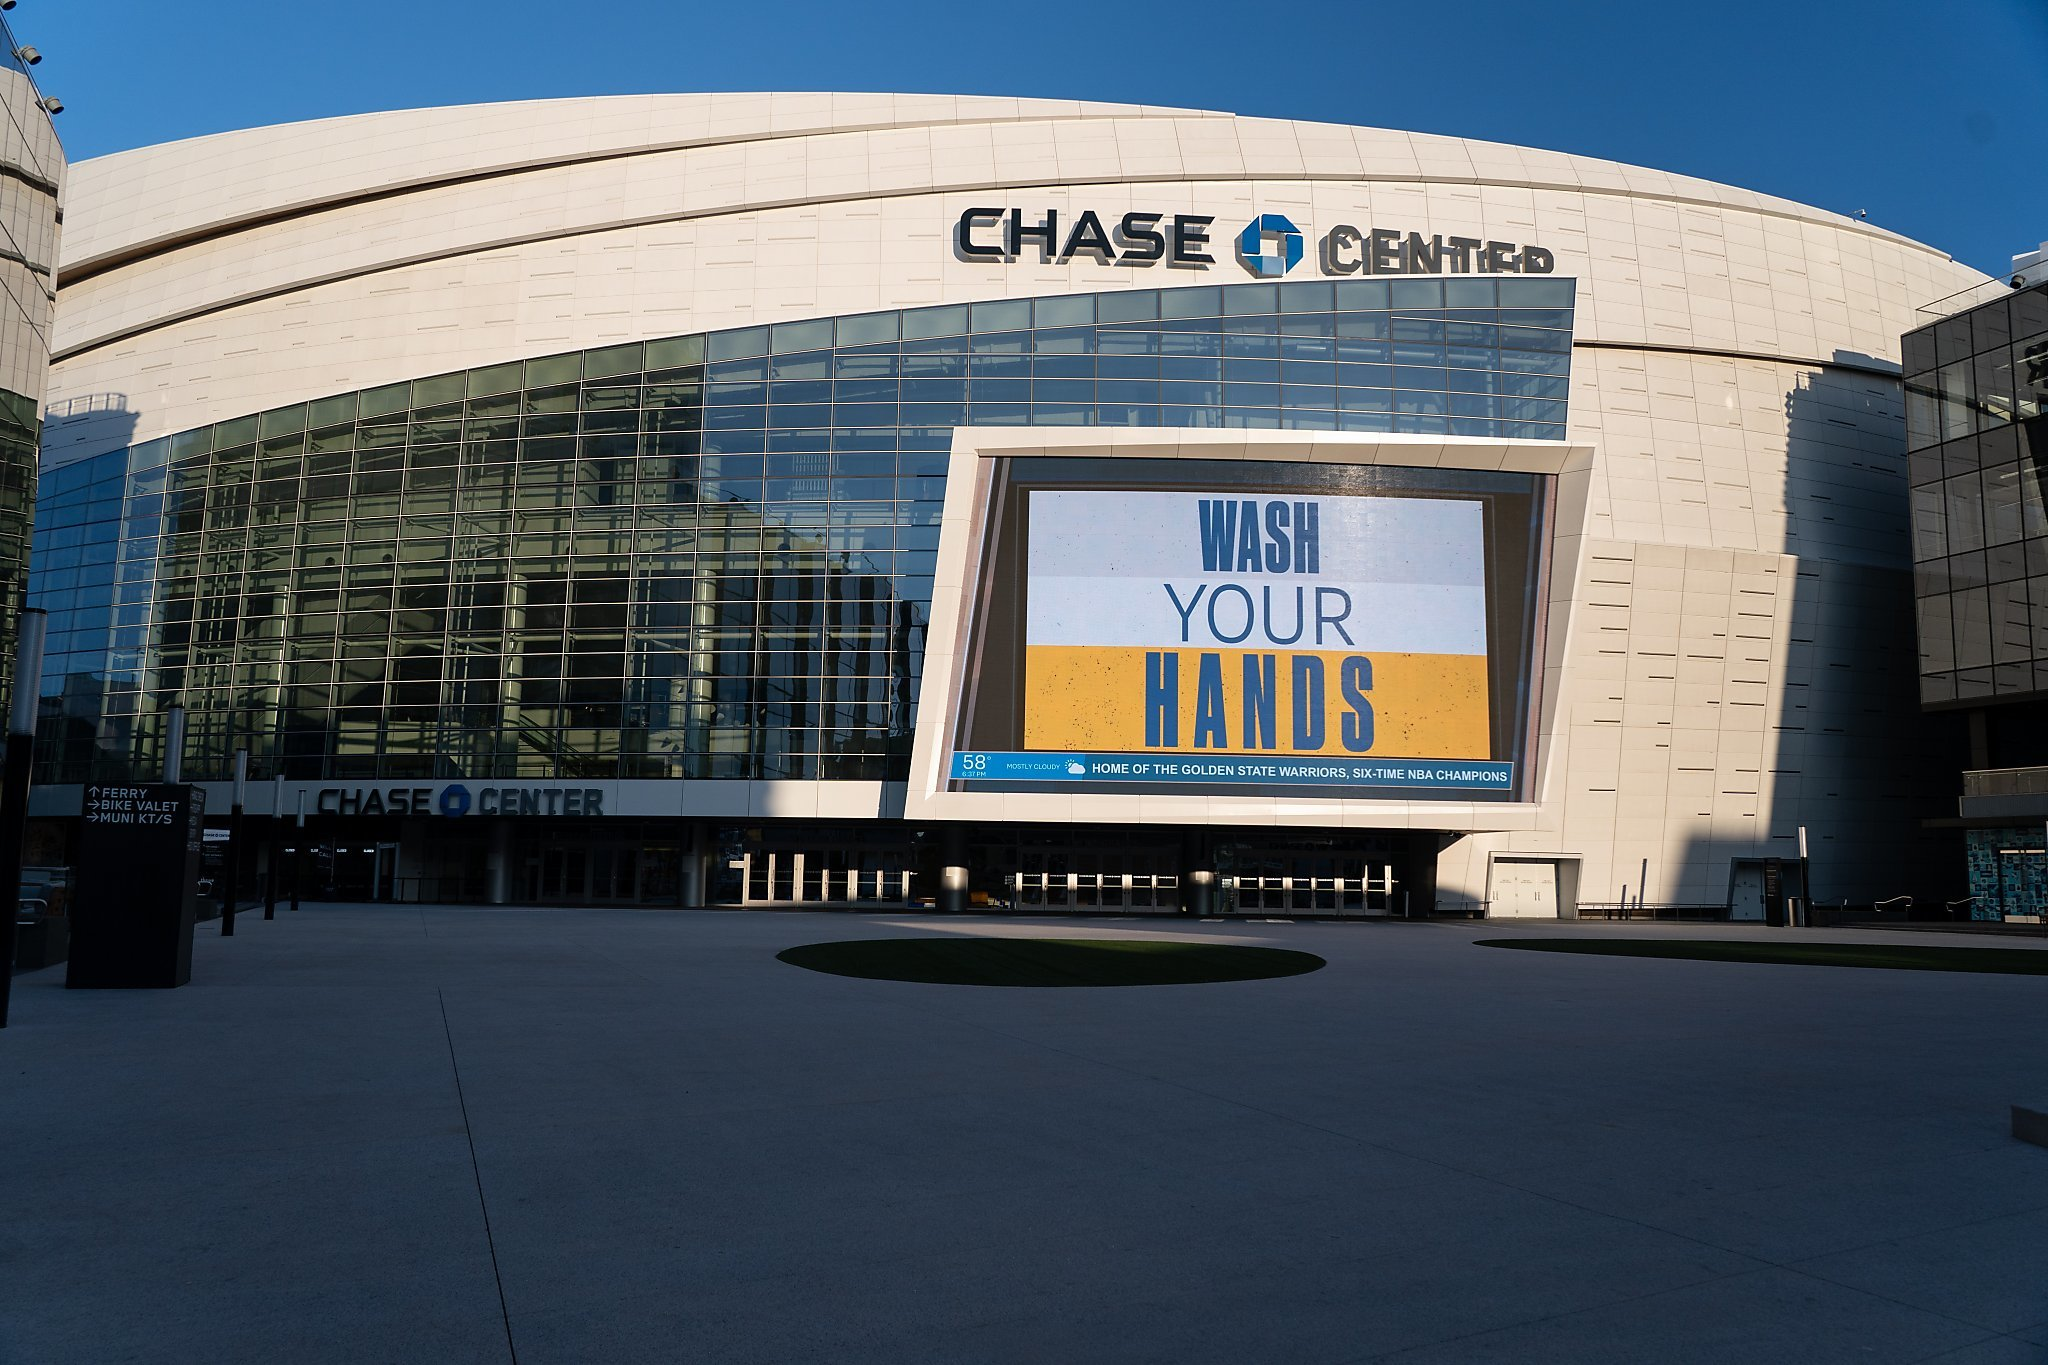 Warriors to convert Chase Center into site for election; A's pursue similar effort - SFChronicle.com 3